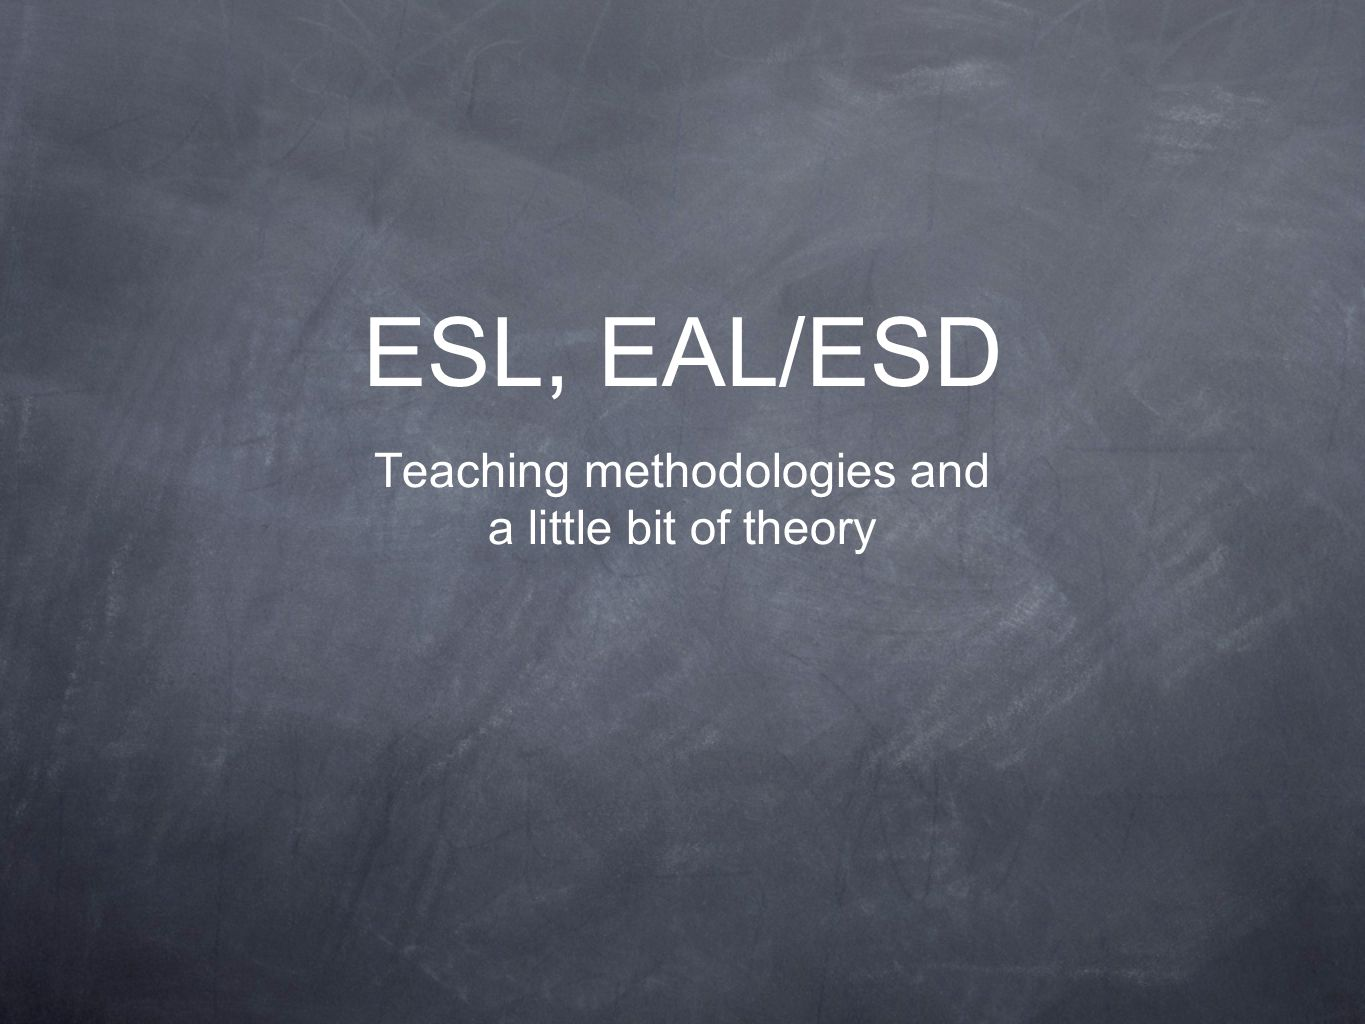 Overview Challenges students face ESL Teaching and Learning cycle Theory PALLIC and The Big 6 for Reading